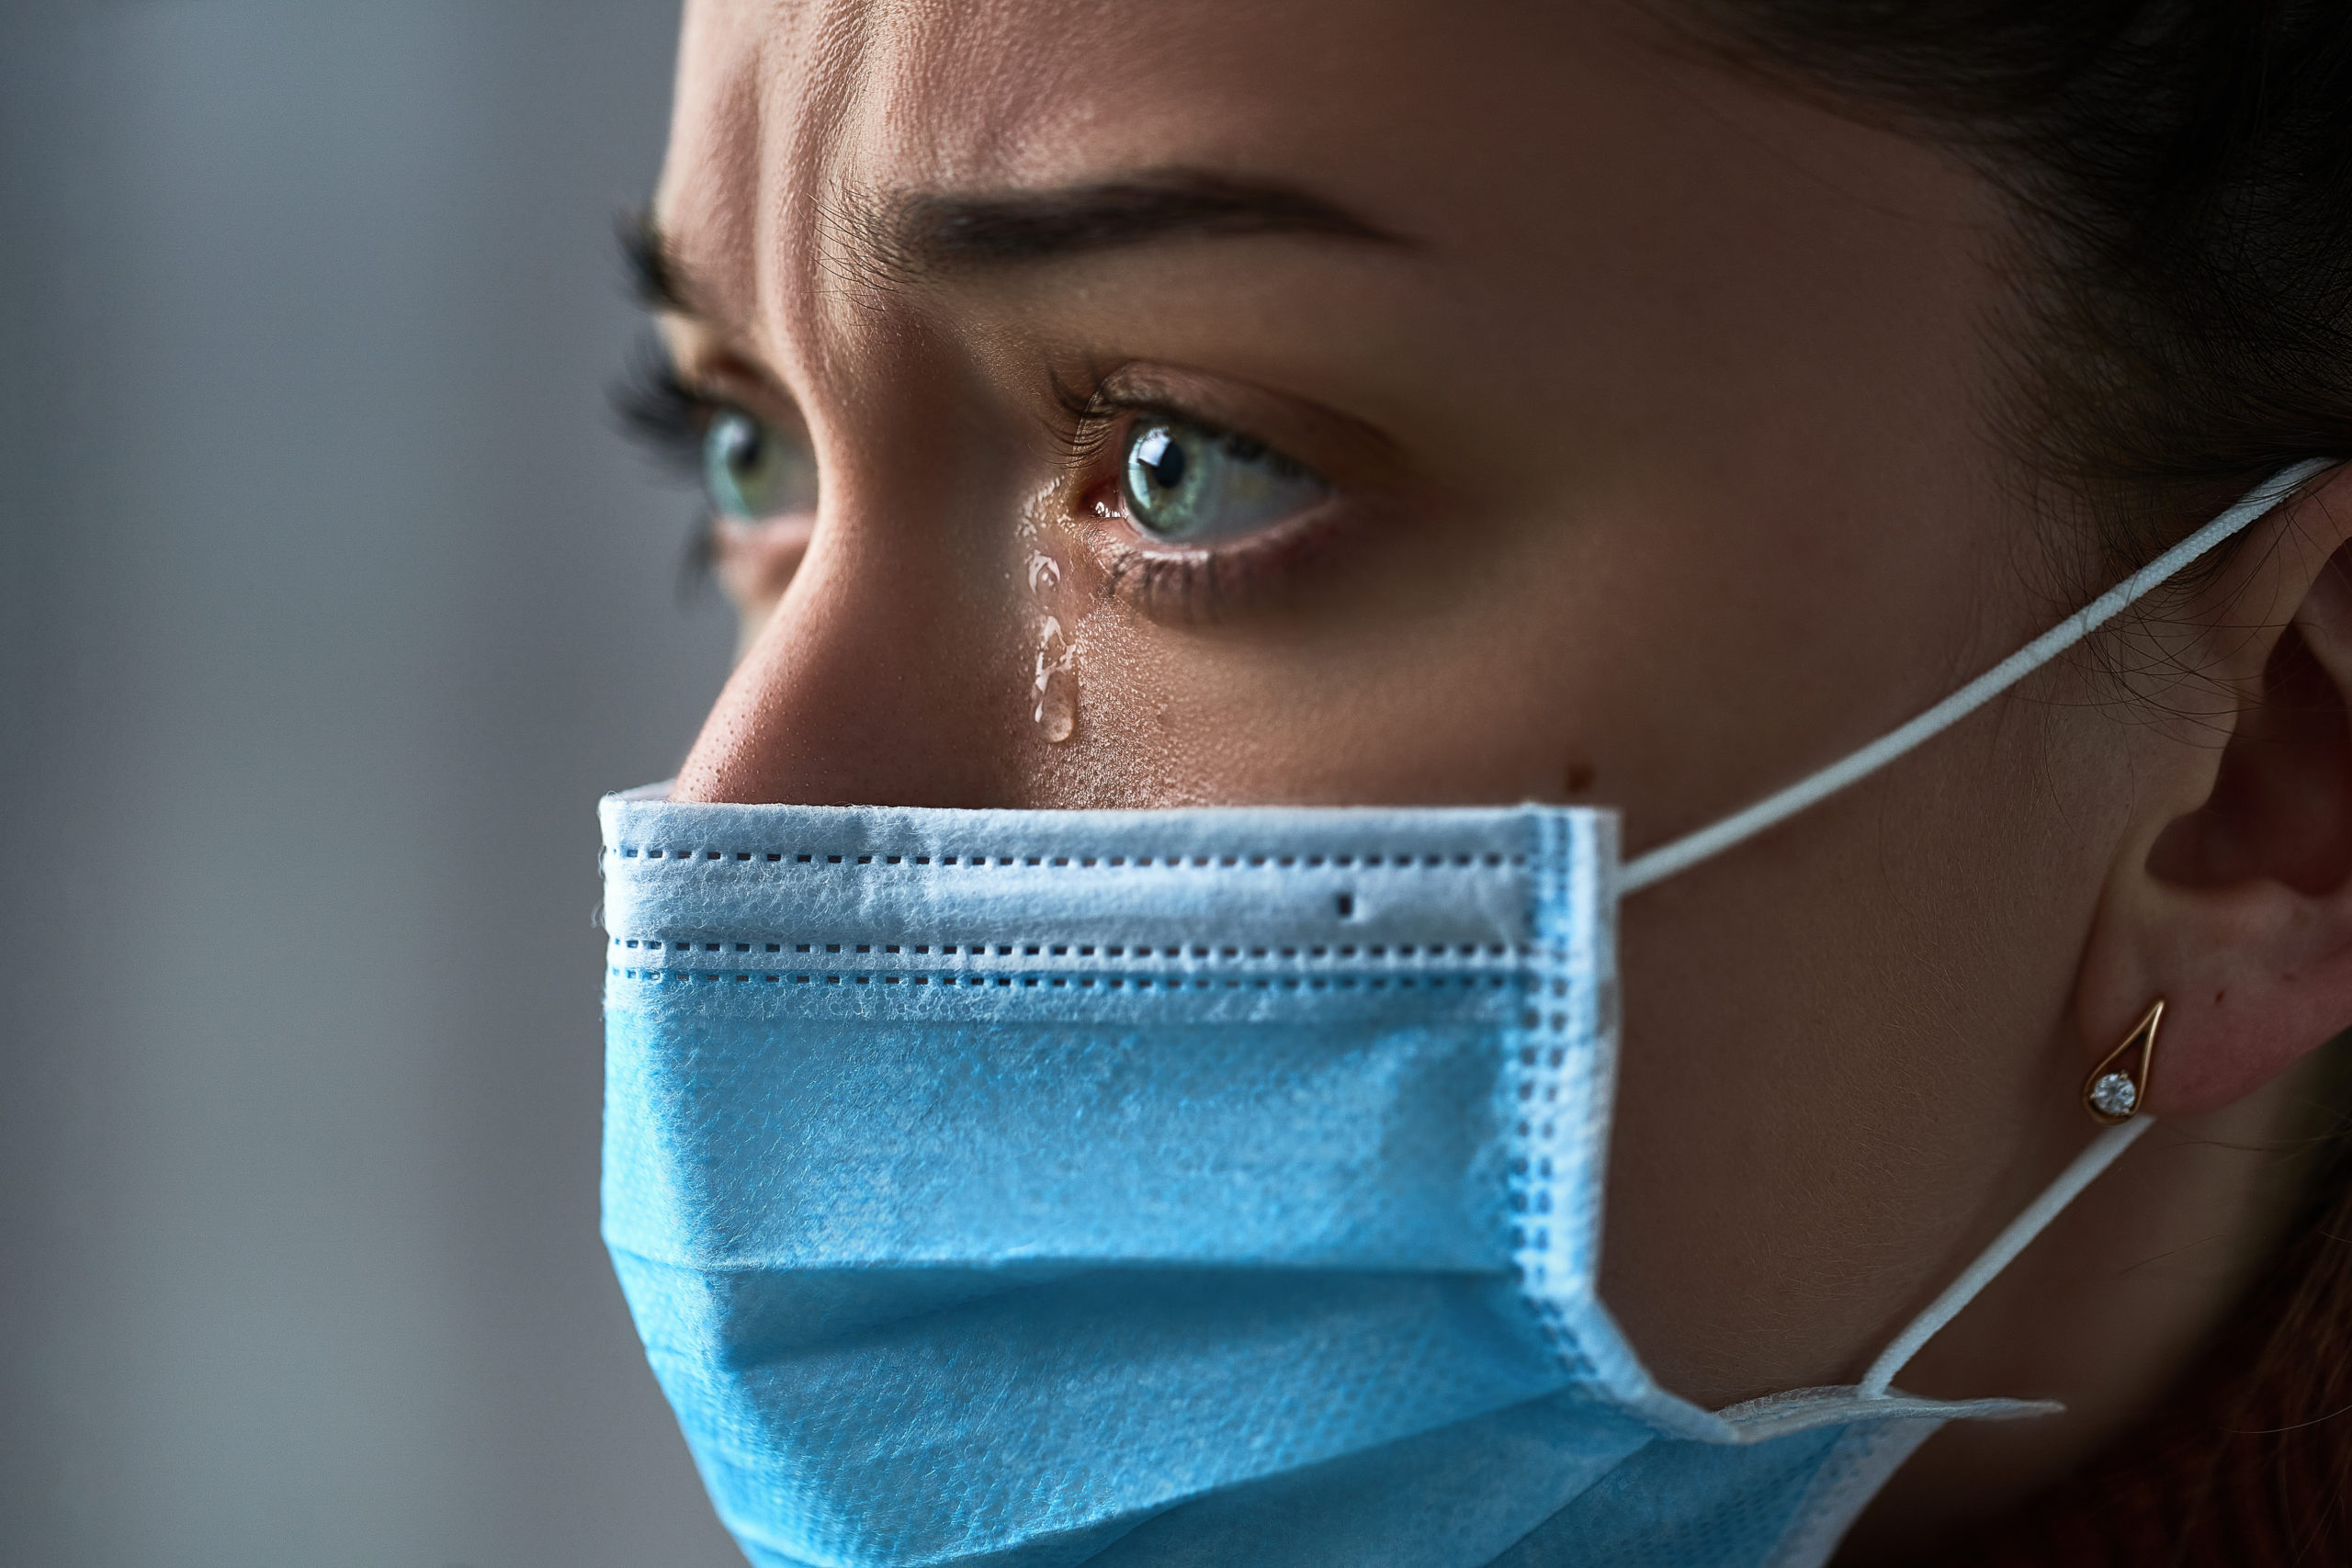 Upset Depressed Melancholy Sad Crying Woman In Protective Face Mask With Tears Eyes During Serious Illness Coronavirus Outbreak And Flu Covid 19 Epidemic. Health Problems Difficulties By Goffkein.pro  Scaled